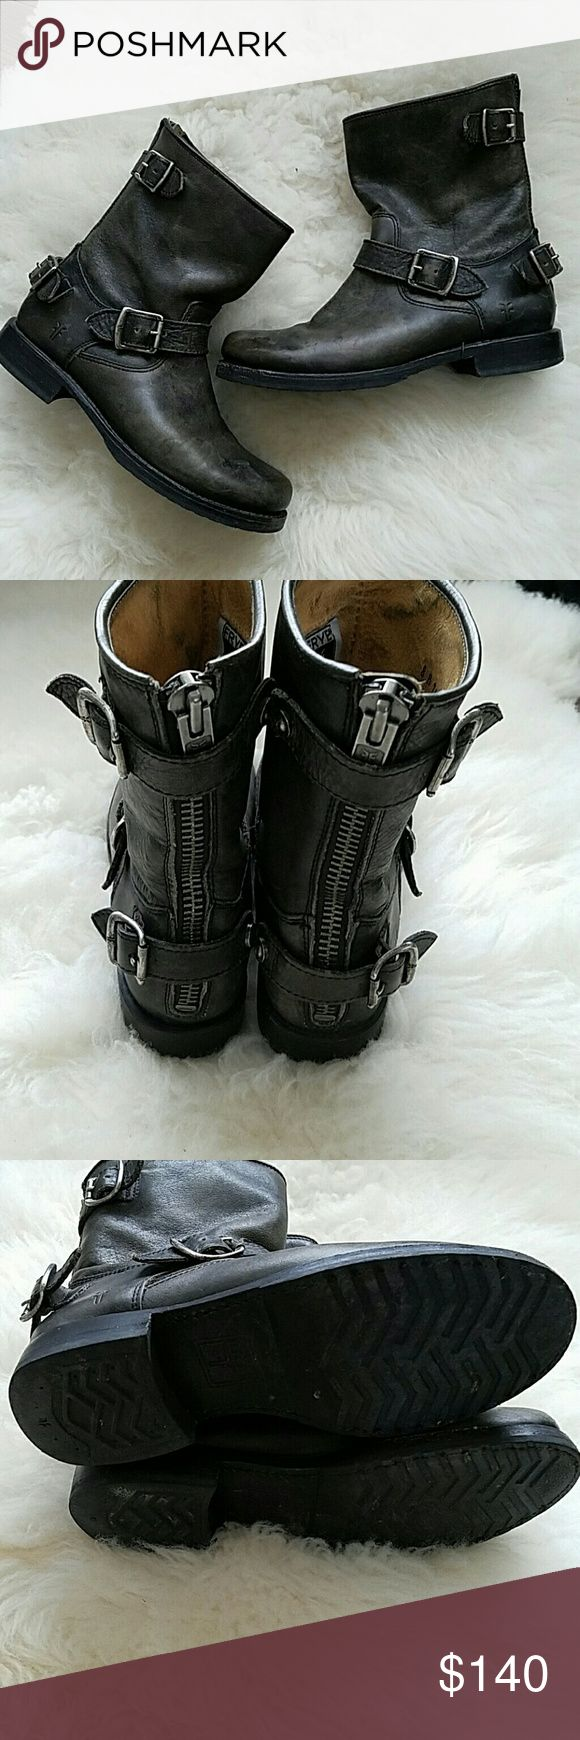 FRYE VERONICA SHORT  BOOTS Good used condition.  Just couple tiny scratch on toes. Frye  Shoes Ankle Boots & Booties